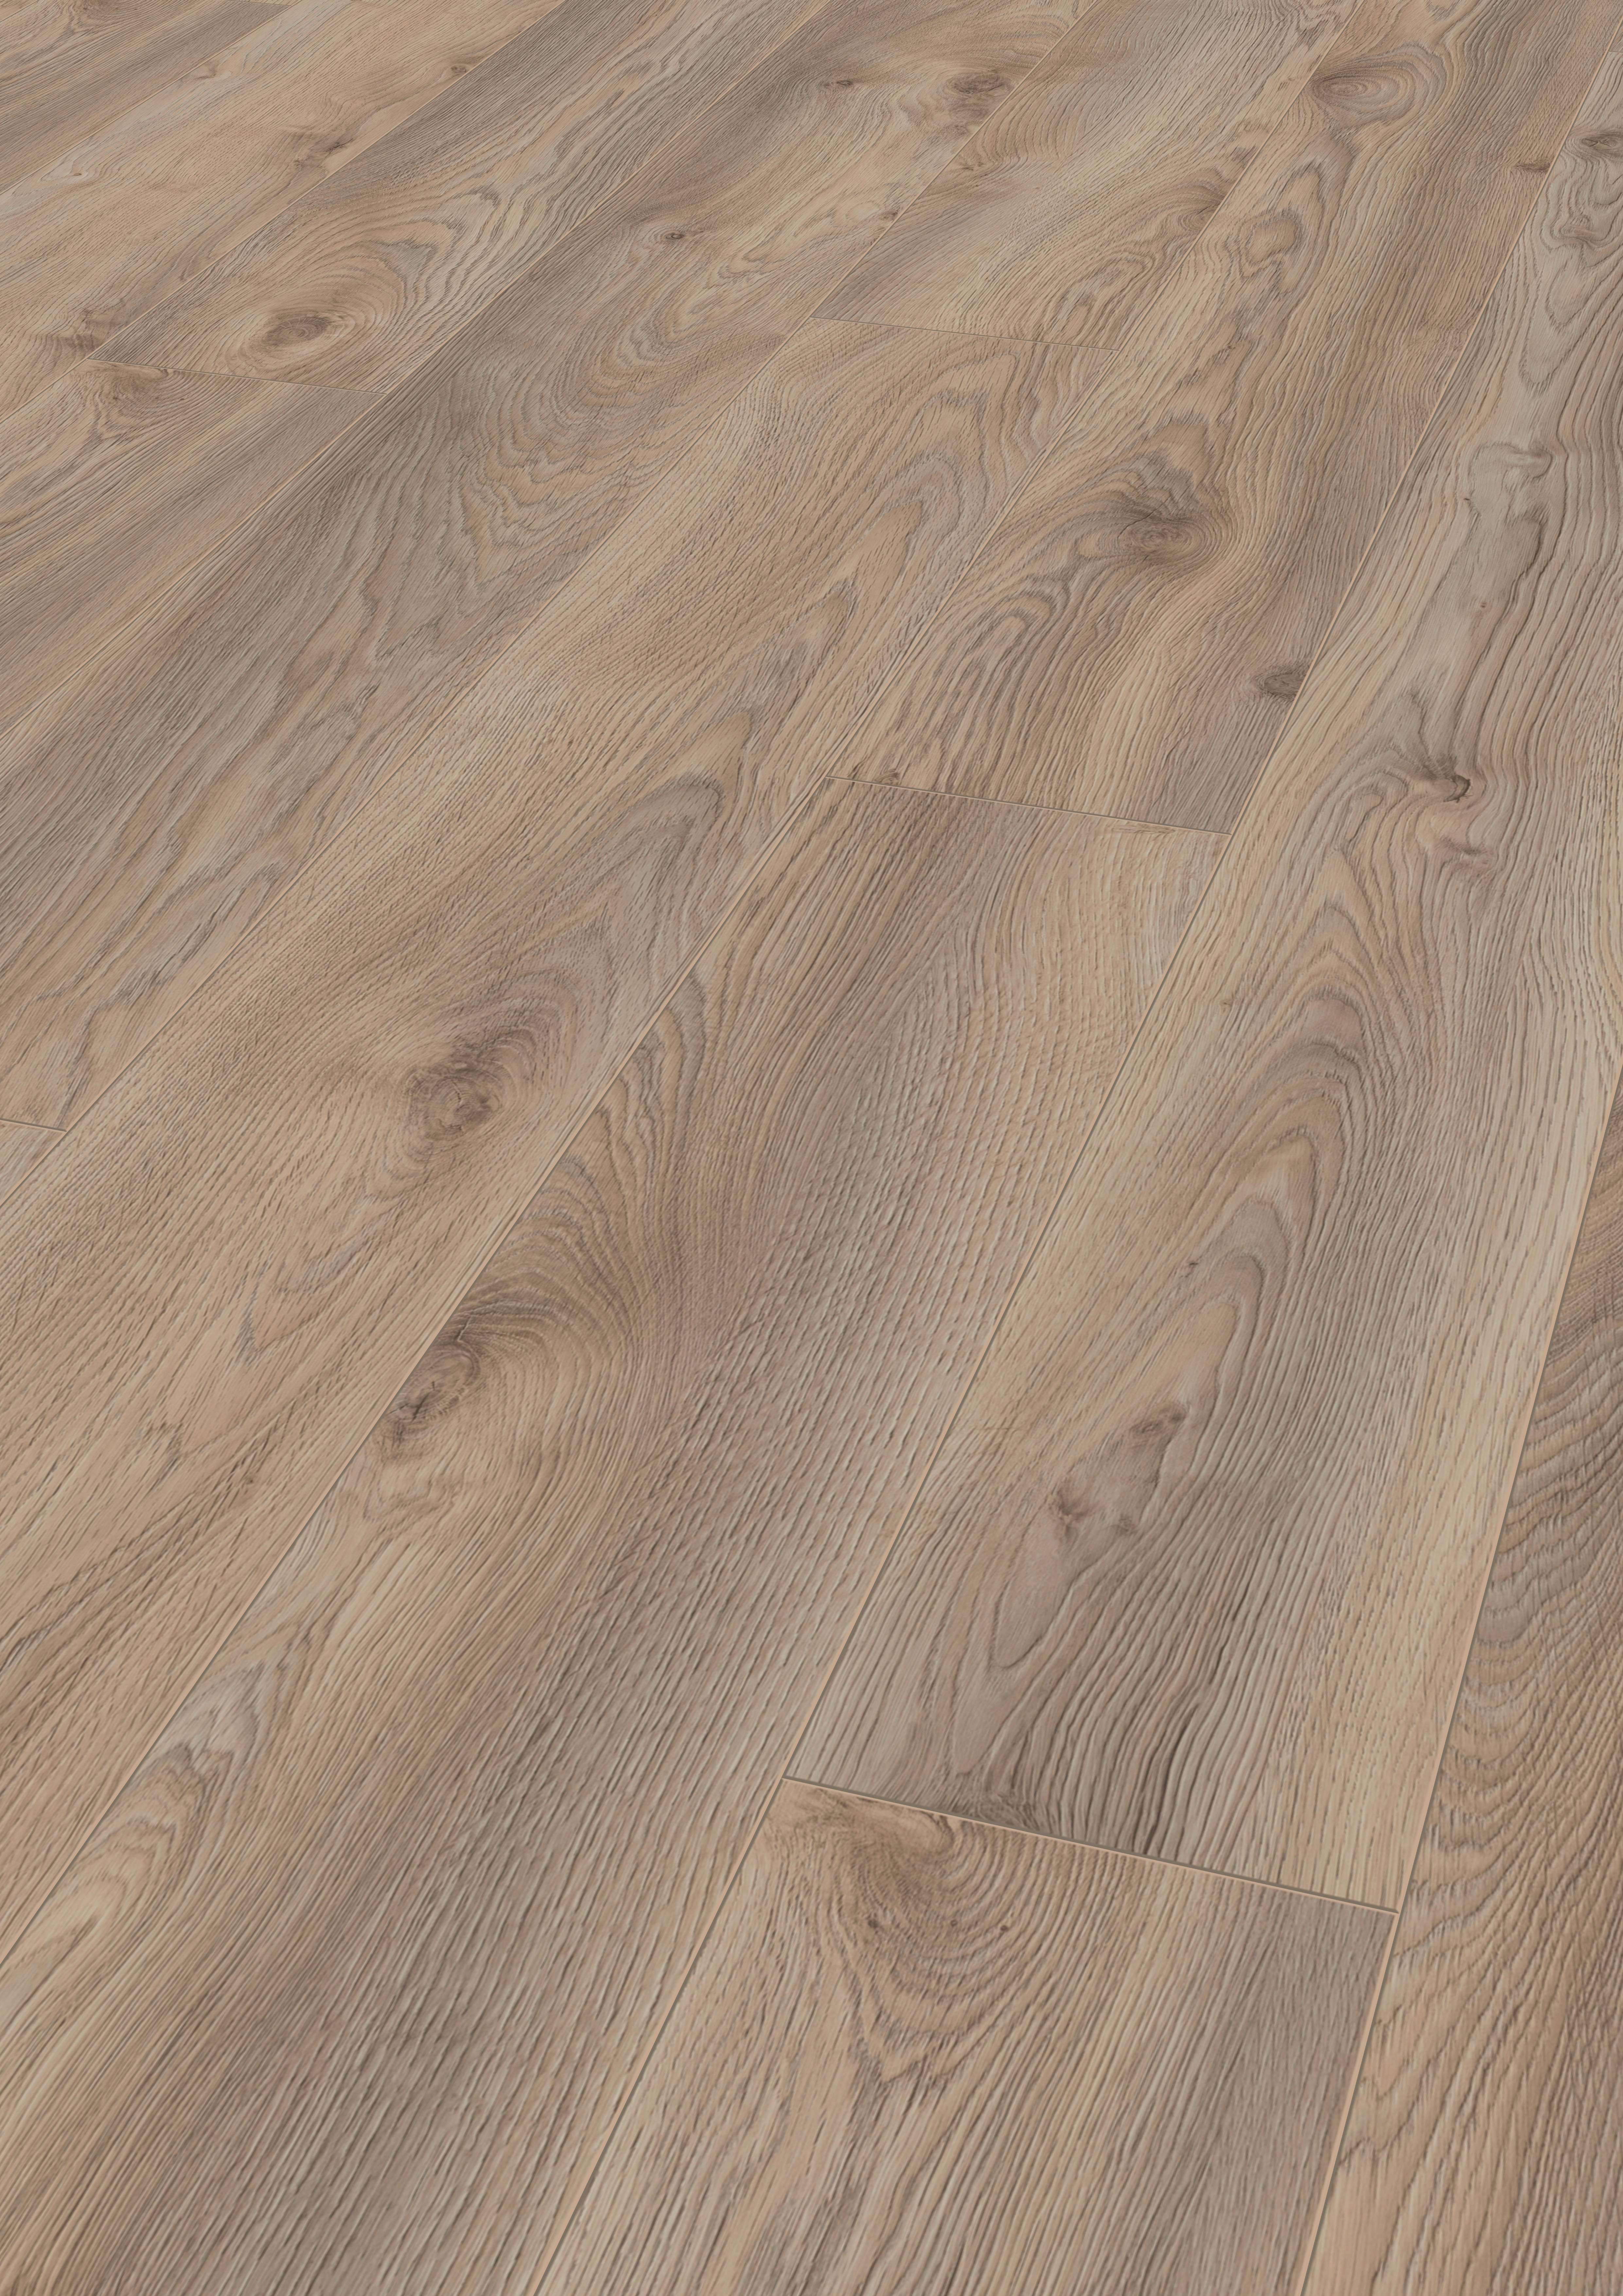 capital hardwood flooring toronto of mammut laminate flooring in country house plank style kronotex with download picture amp